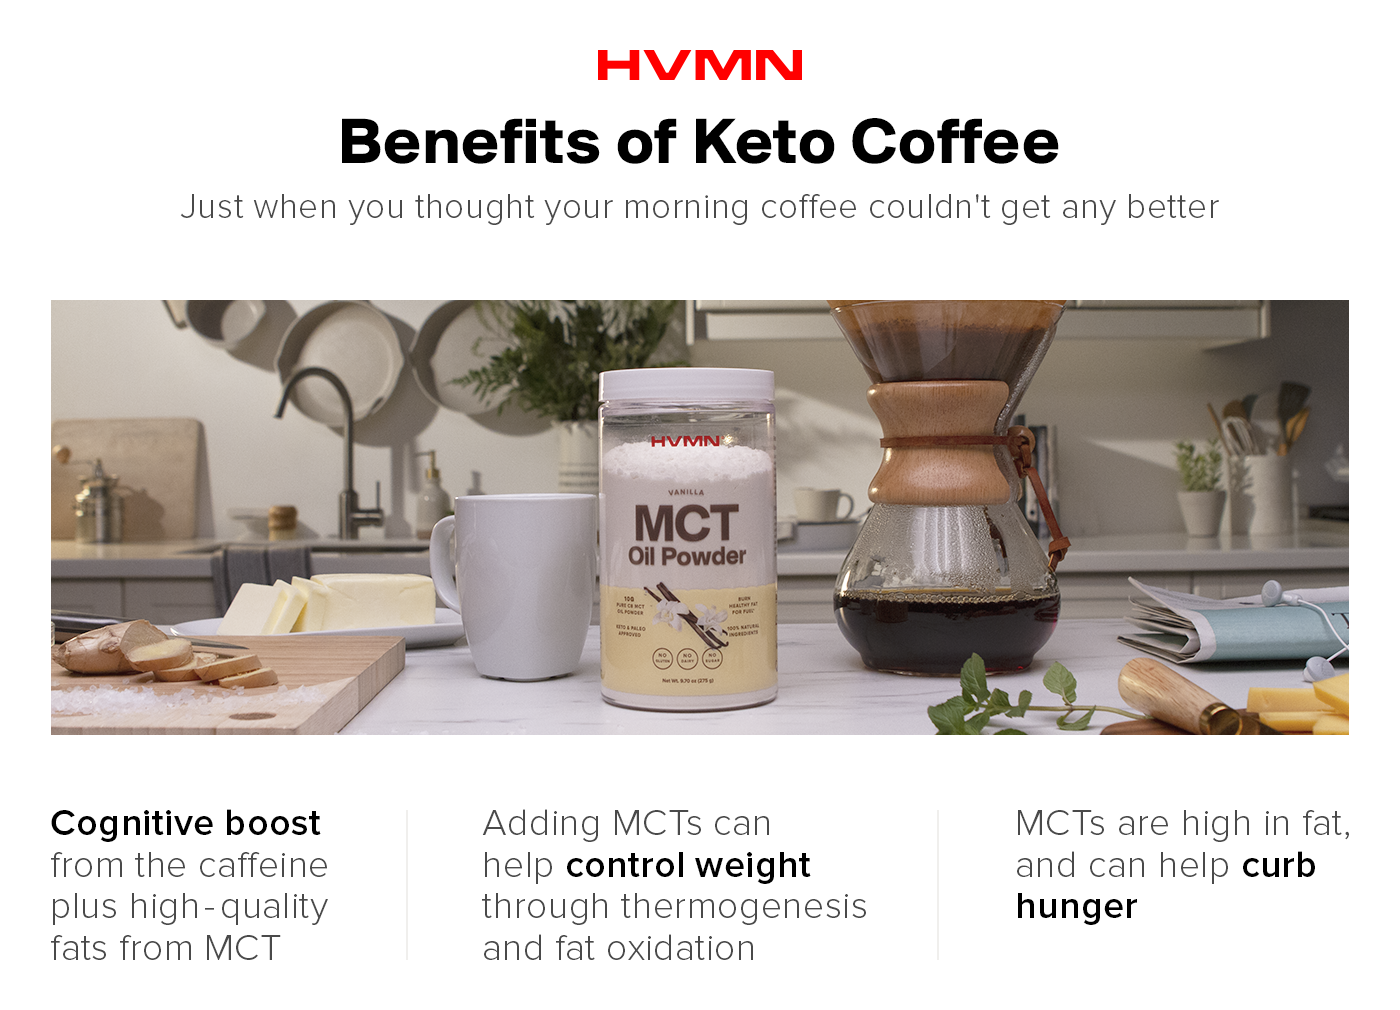 An image of H.V.M.N.'s MCT Oil Powder on a kitchen counter with coffee and butter